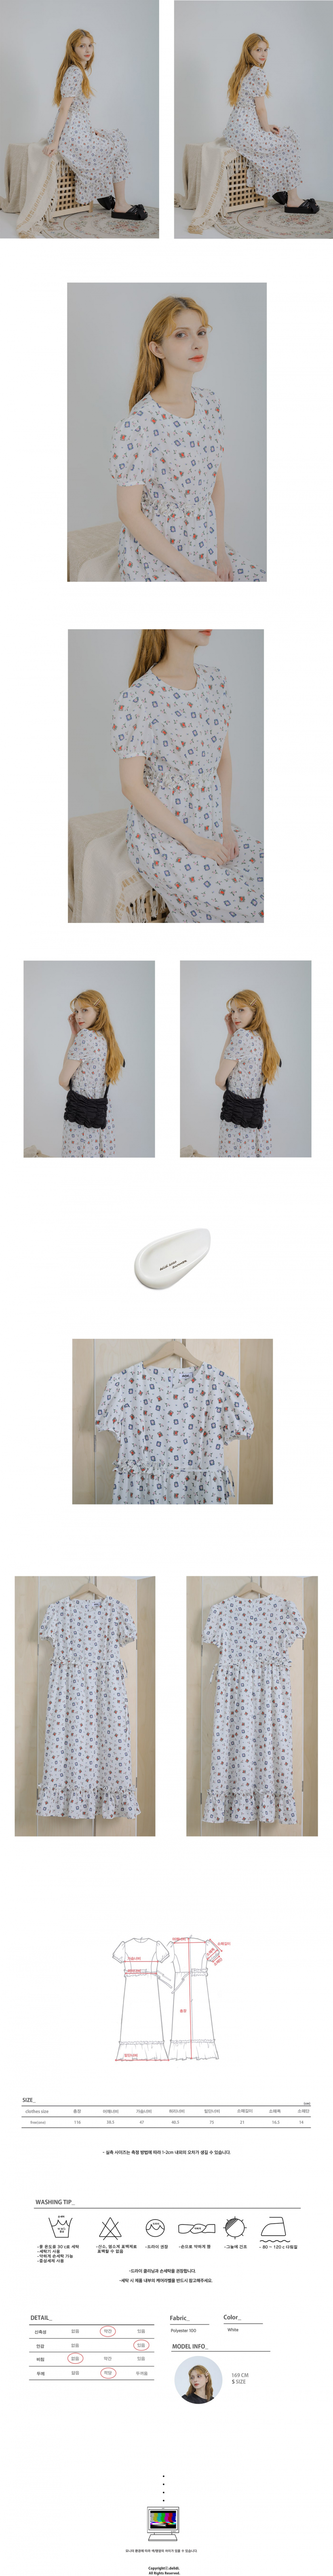 딜라이디(DELIDI) Florence raffle dress (white)